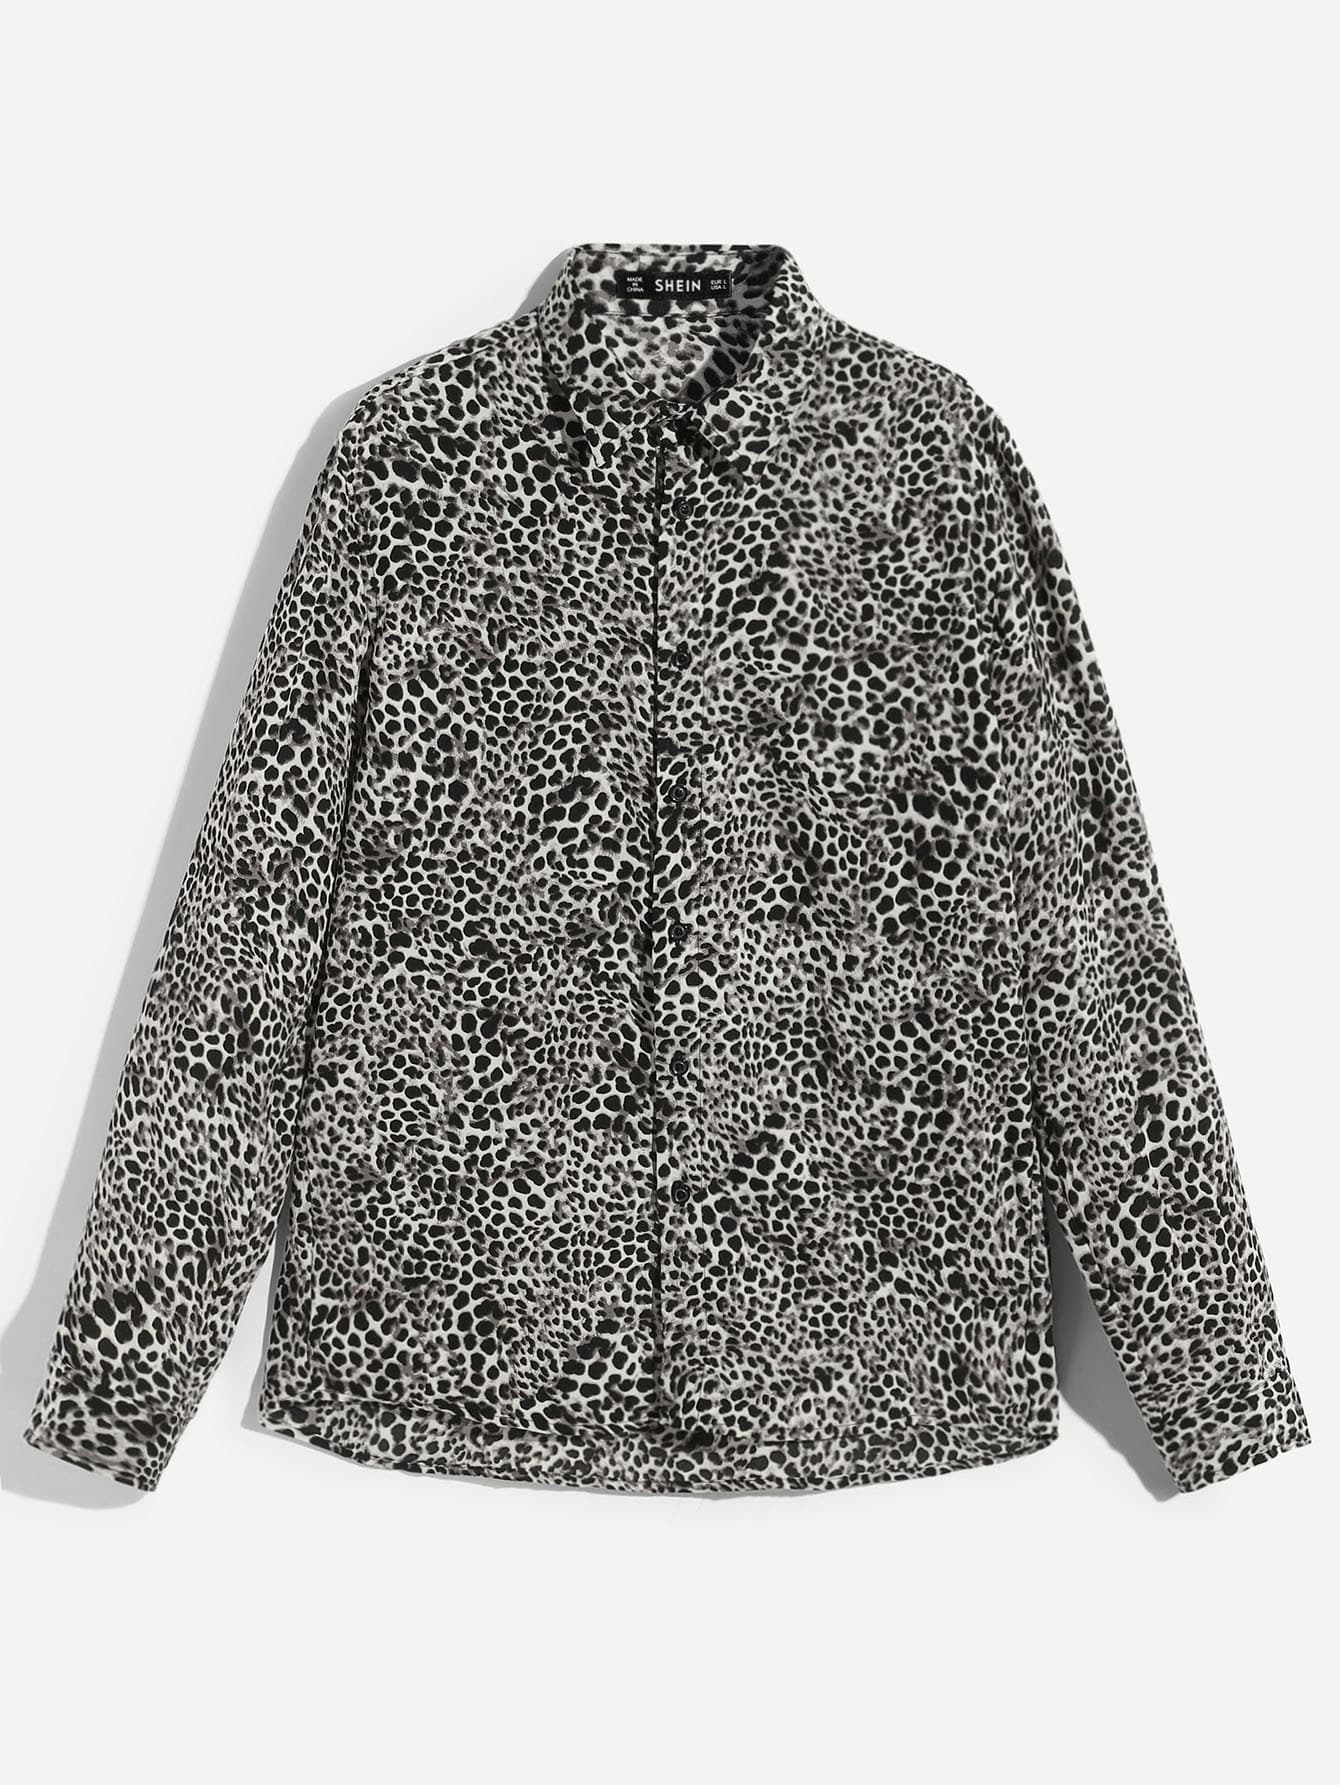 Men Leopard Shirt Men Leopard Shirt